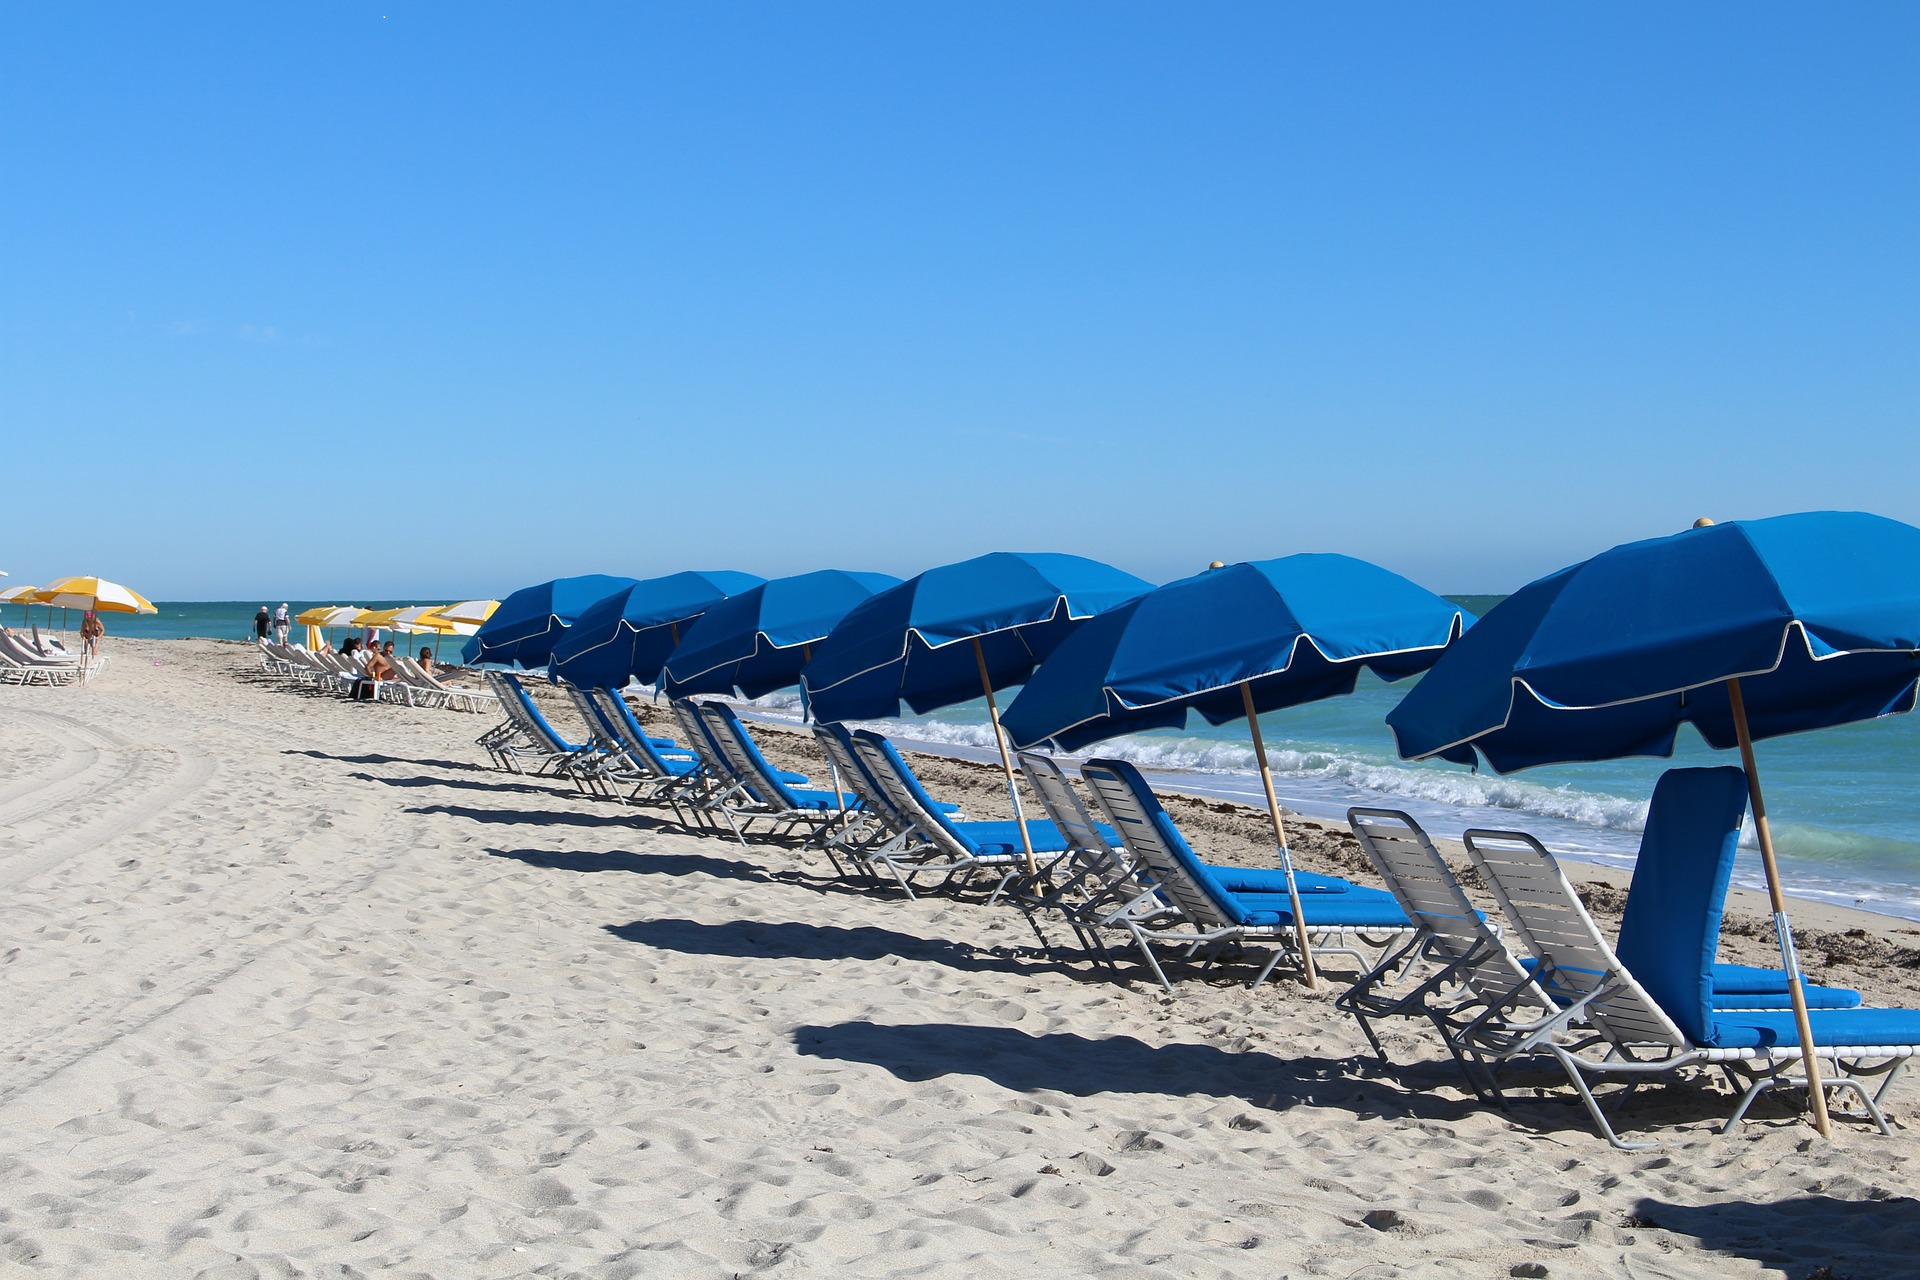 Umbrellas and Chairs on the Beach